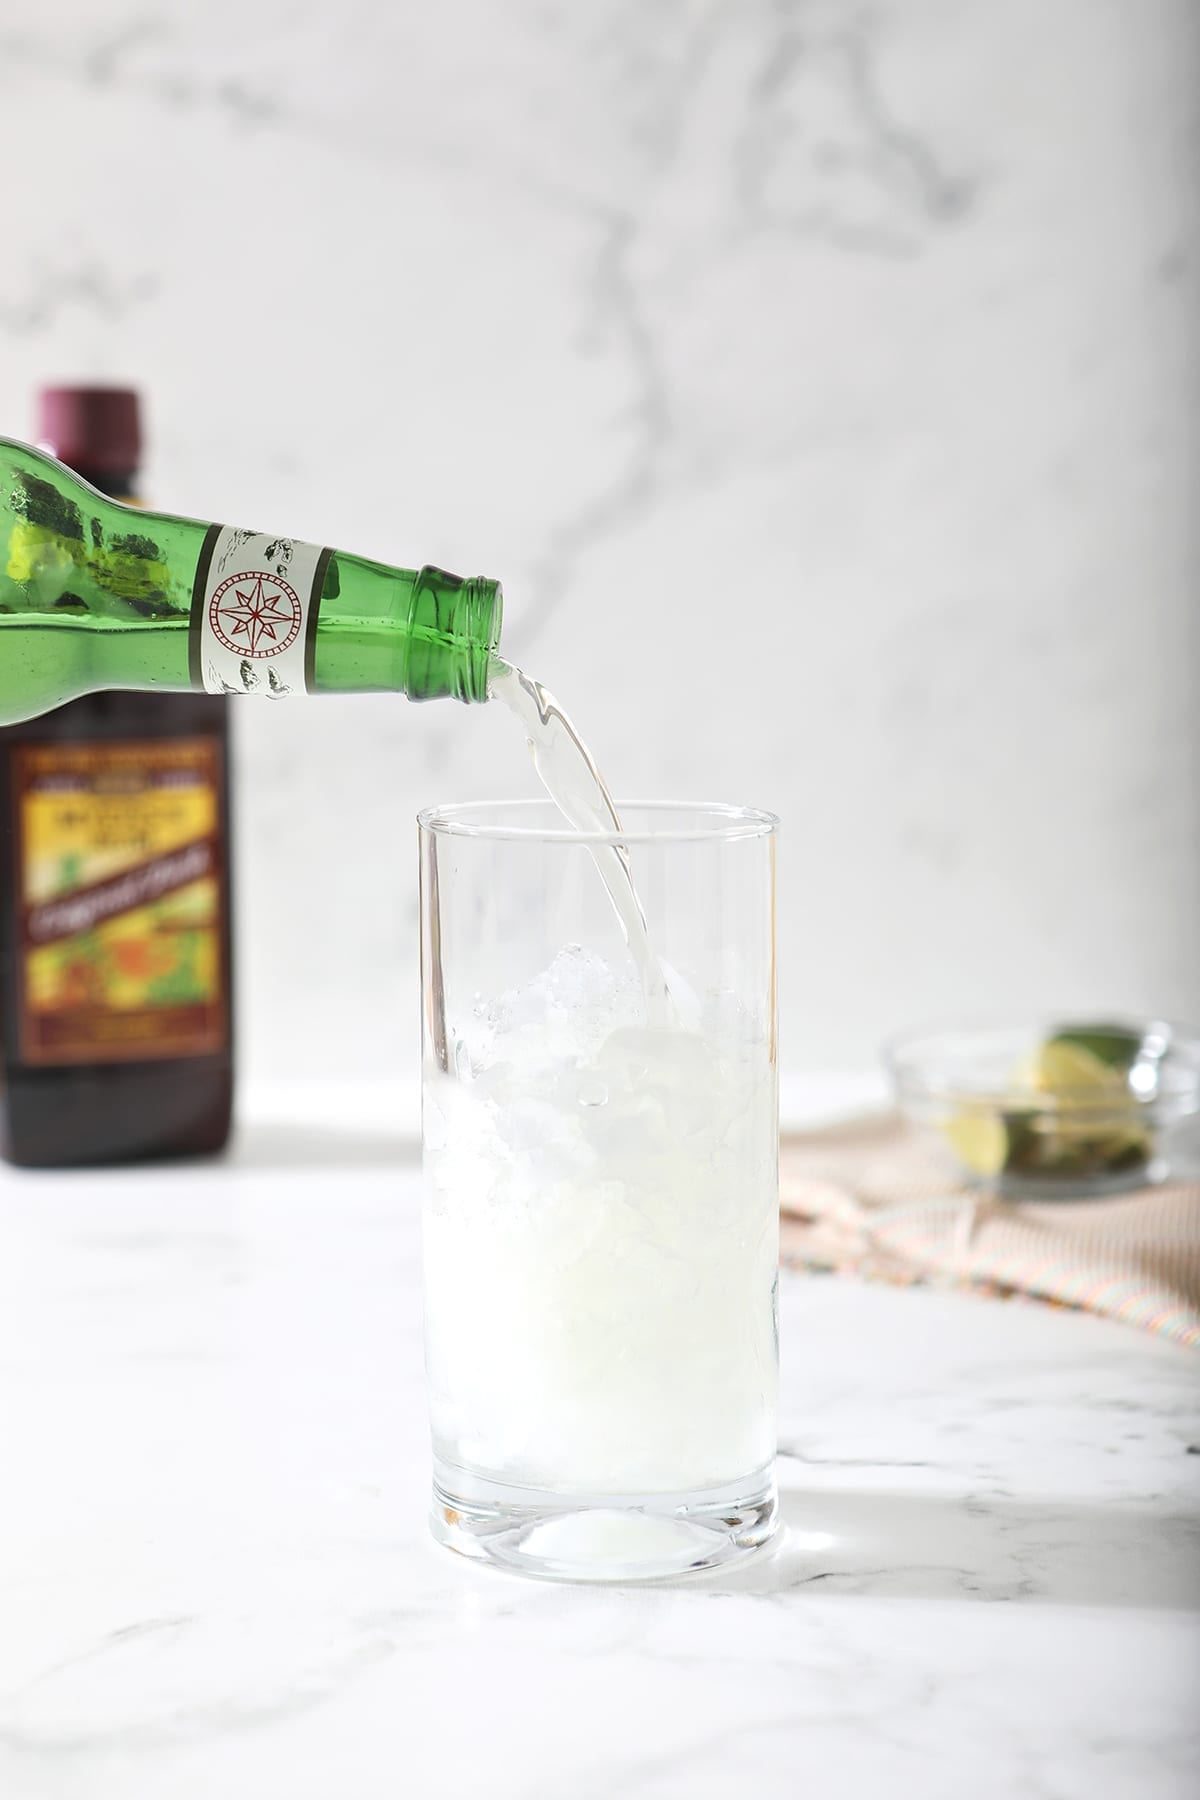 Ginger beer is poured into a highball glass with crushed ice cubes on marble